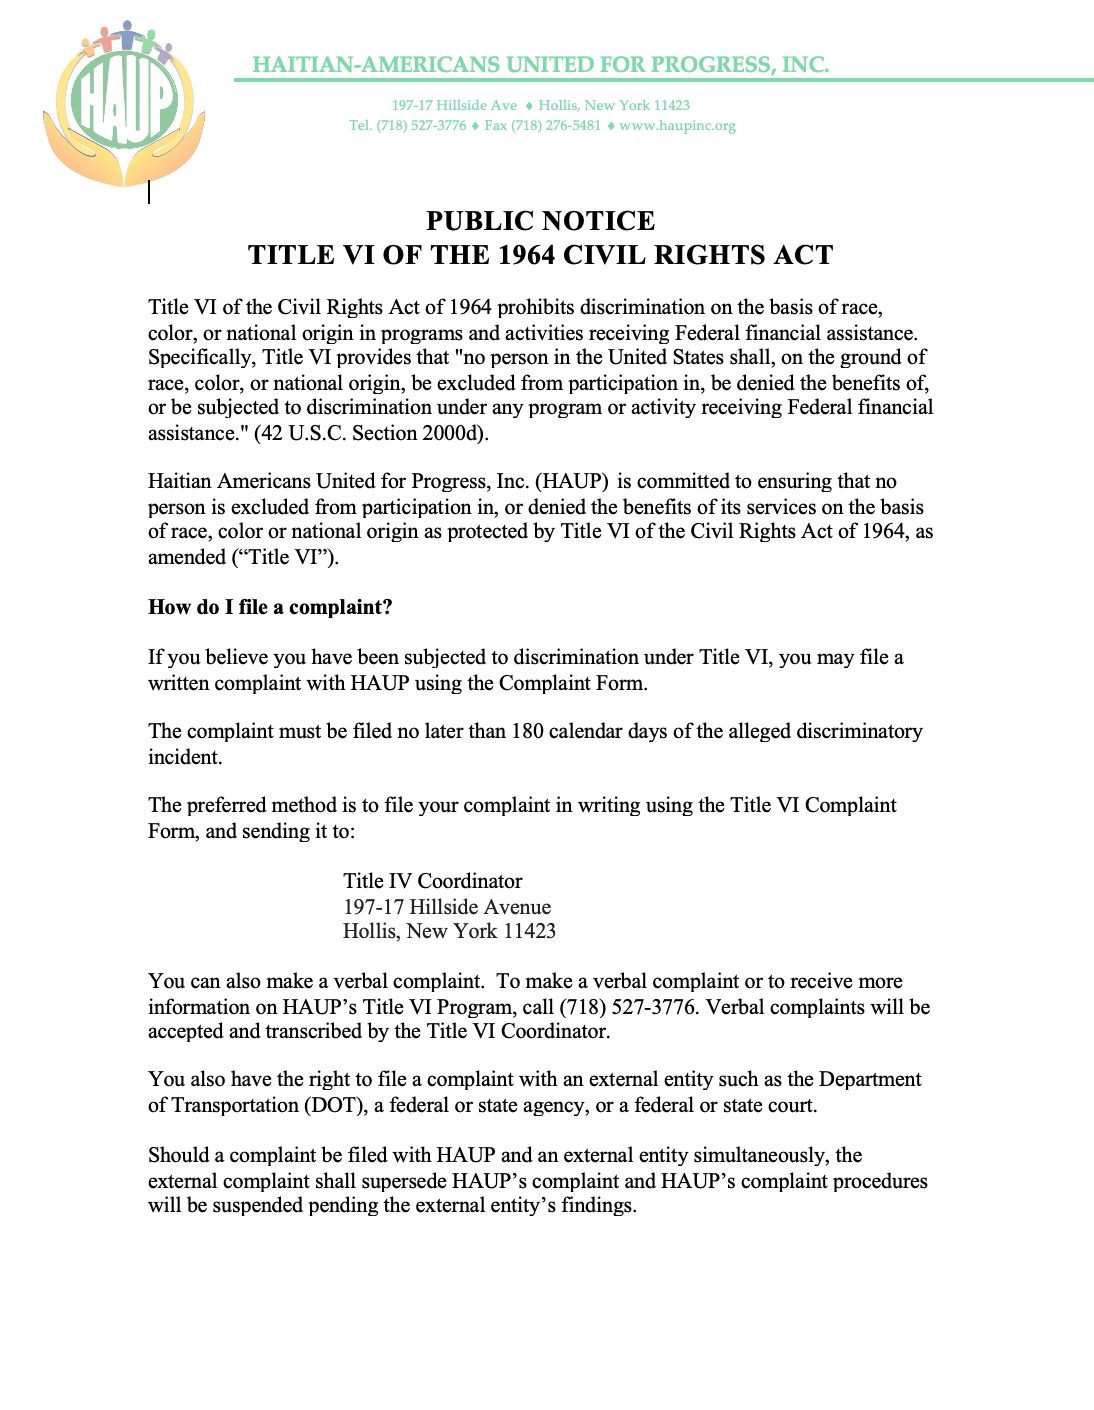 PUBLIC NOTICETITLE VI OF THE 1964 CIVIL RIGHTS ACT. - To read more, CLICK HERE TO PRINT.